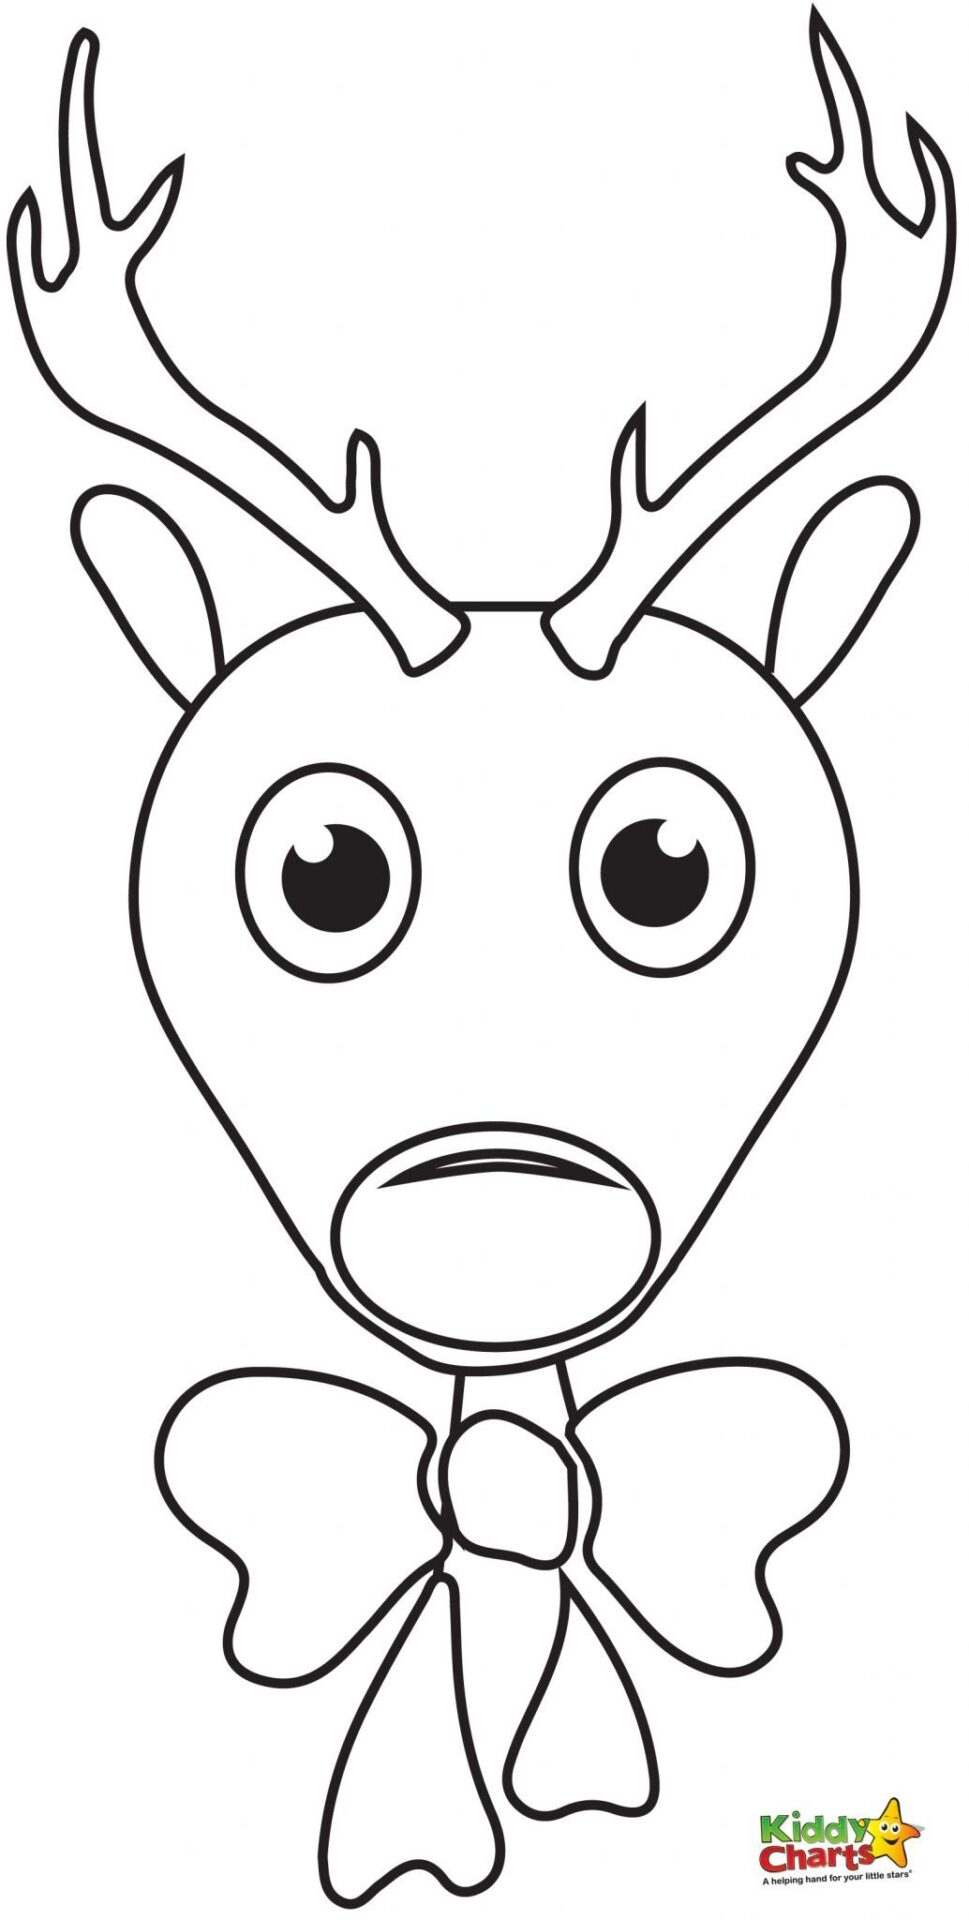 Search results for rudolph the red nose reindeer for Reindeer coloring pages